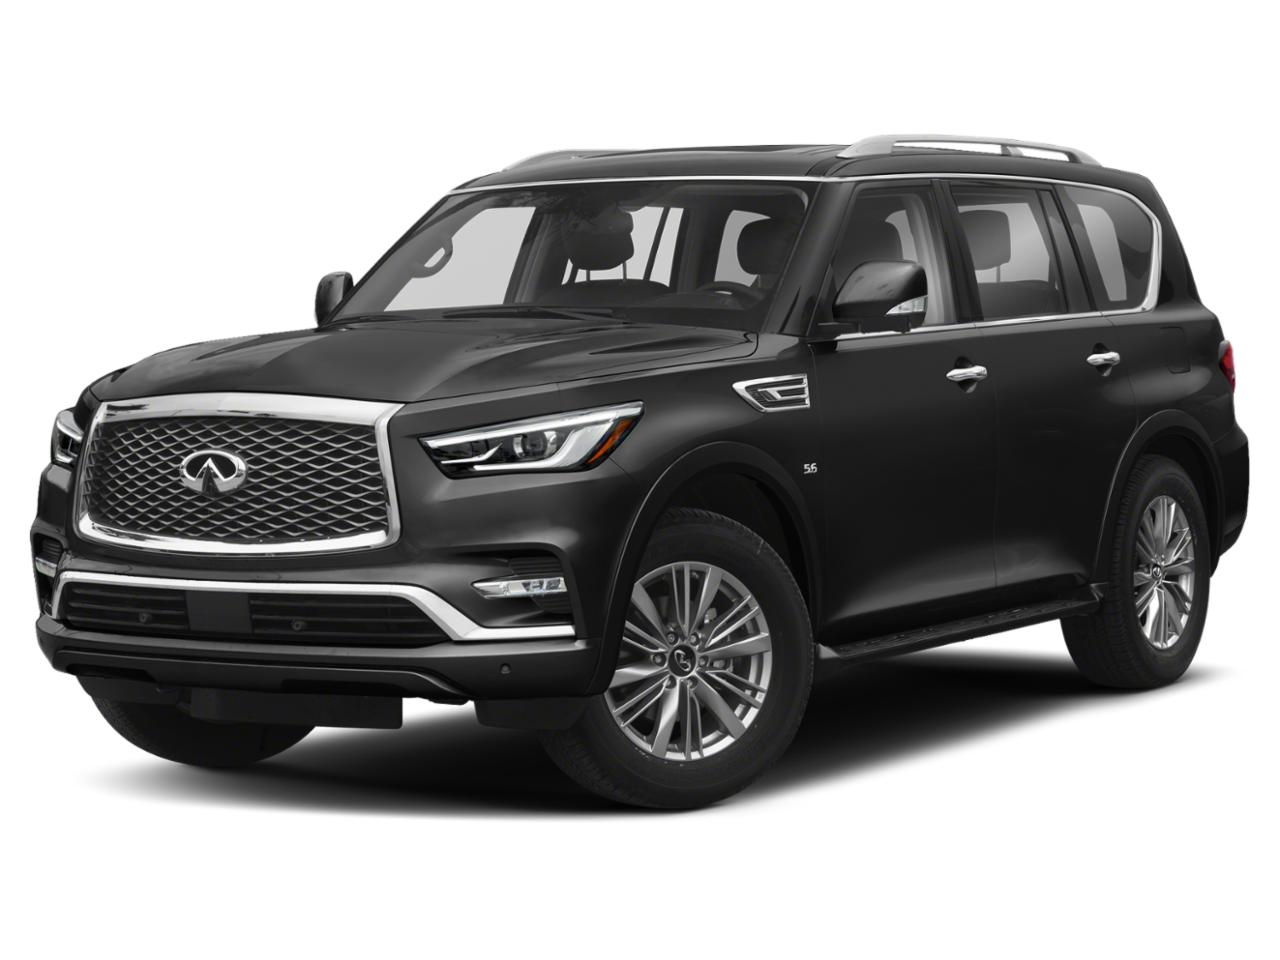 2019 INFINITI QX80 Vehicle Photo in Spokane, WA 99207